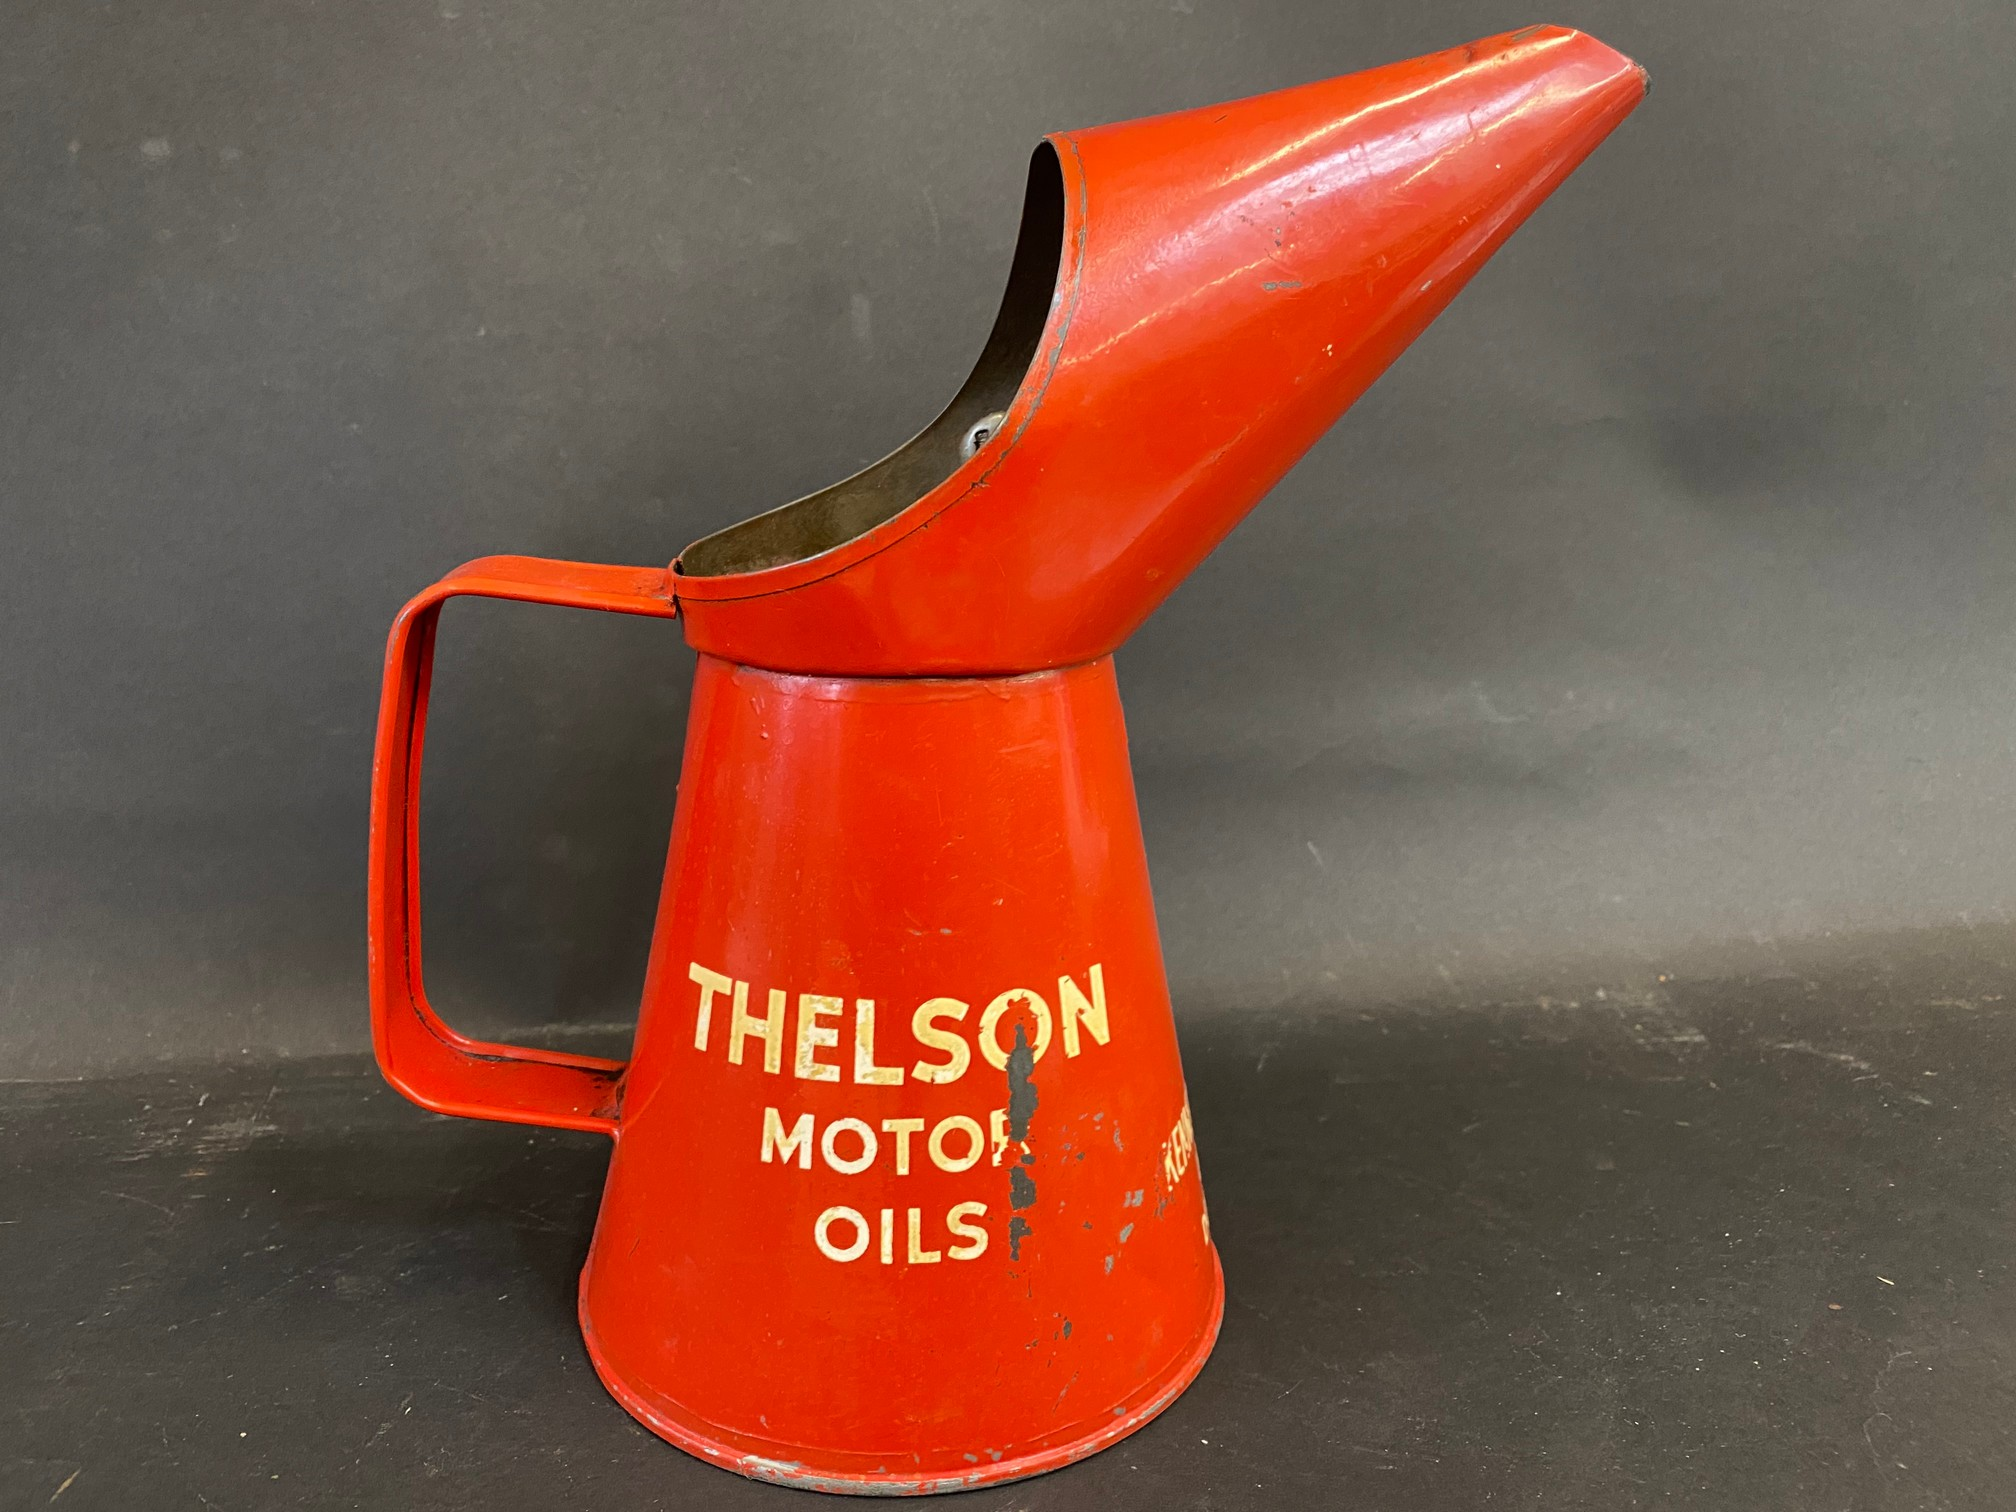 A Thelson Tractor Oils quart measure, in good condition. - Image 3 of 5